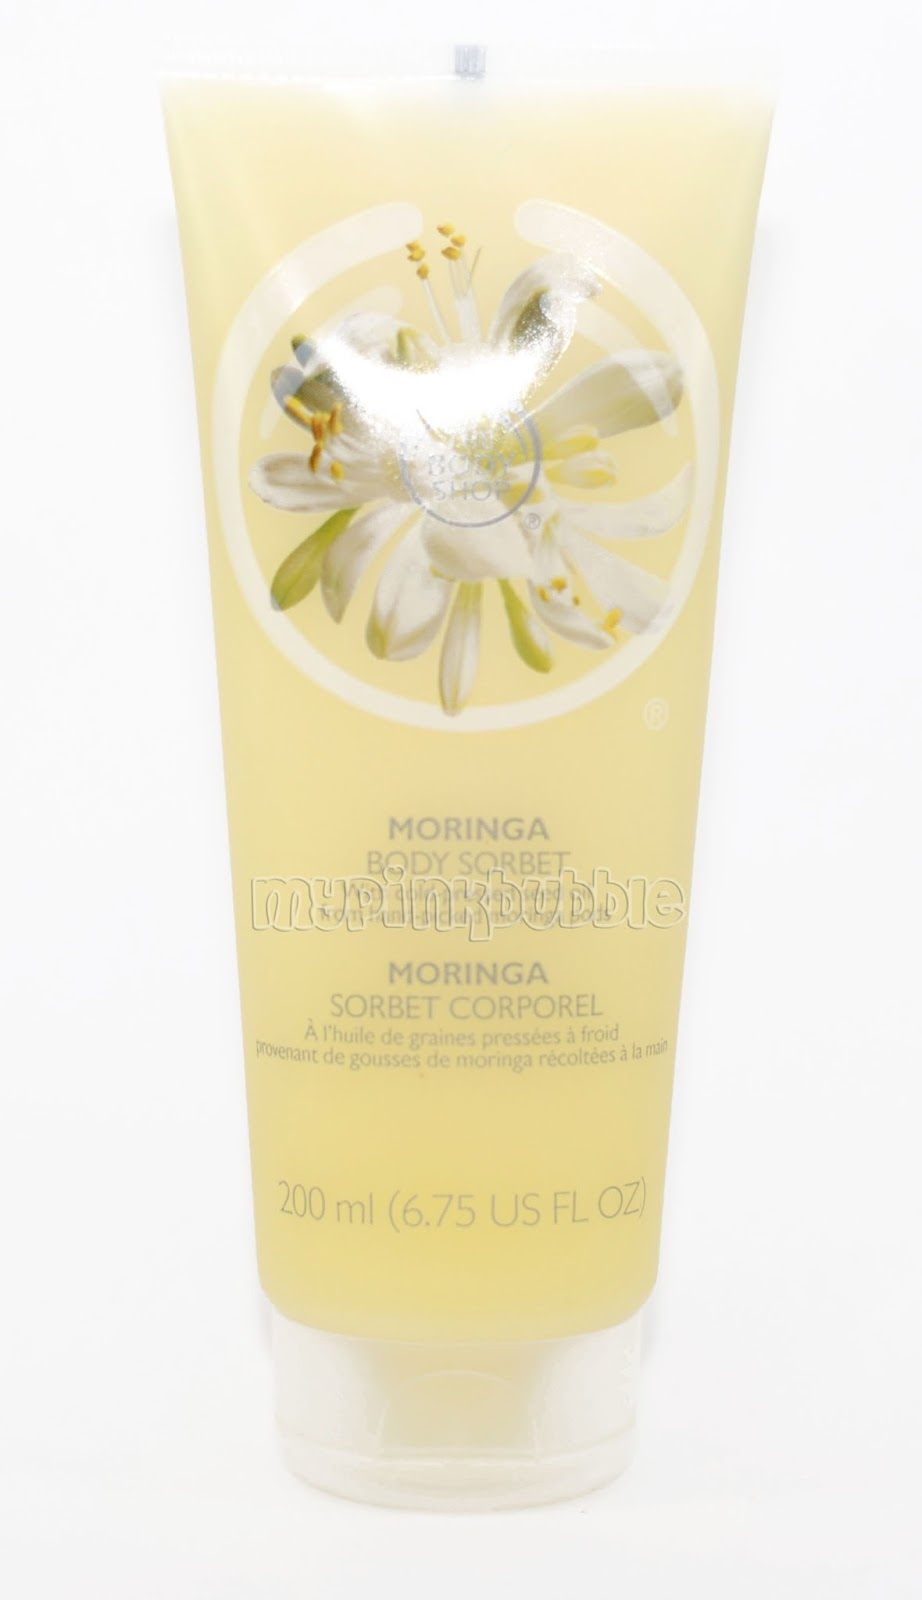 Body shop body sorbet moringa